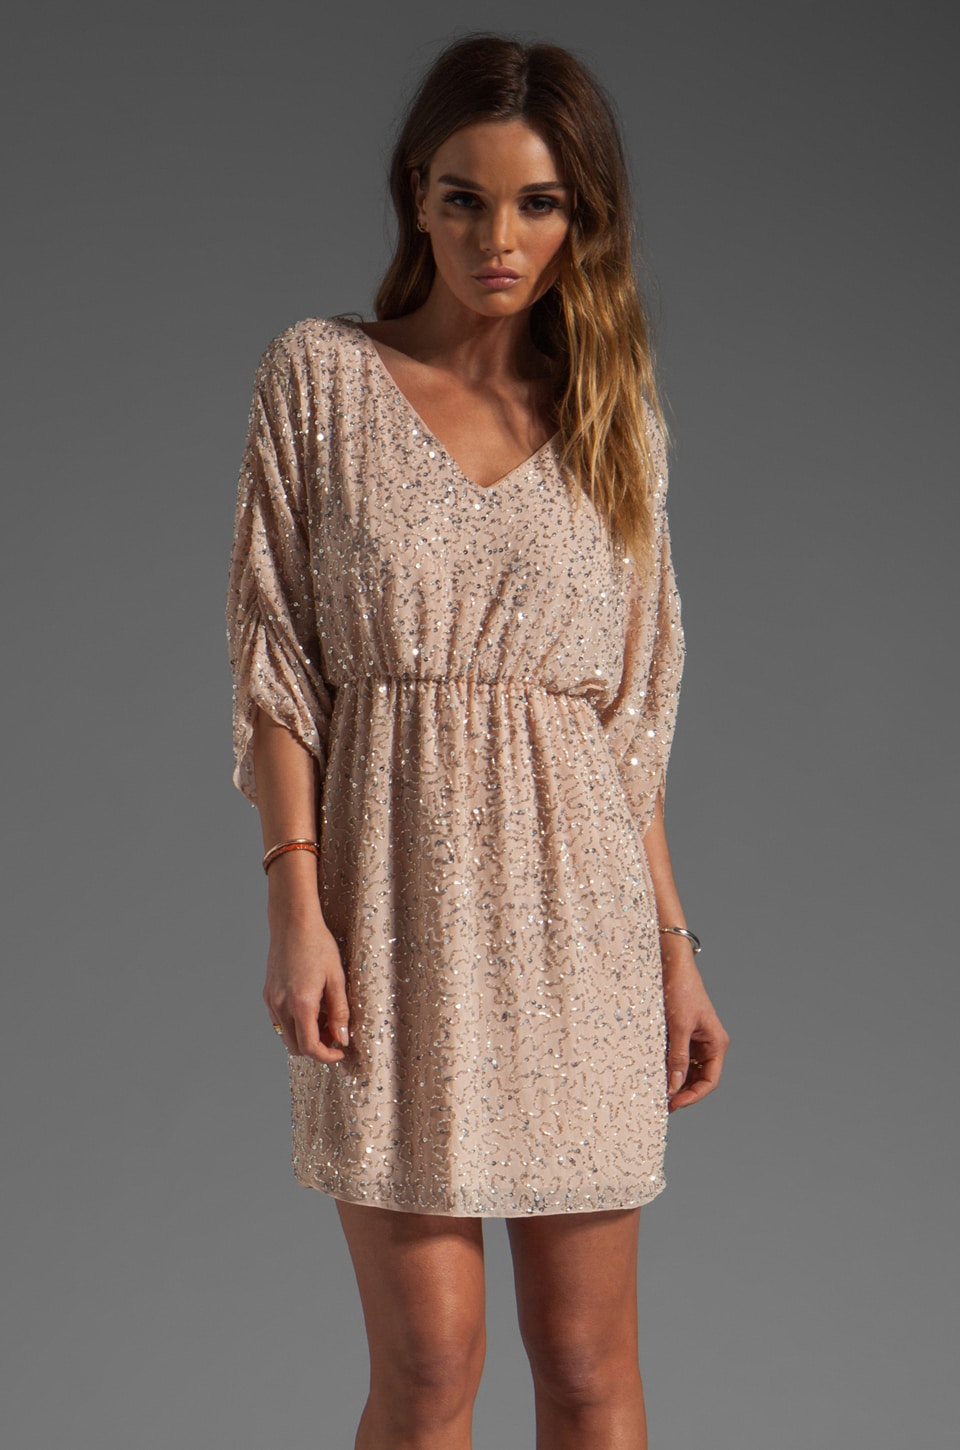 Alice + Olivia Olympia Embellished Tunic Dress in Pale Peach/Silver